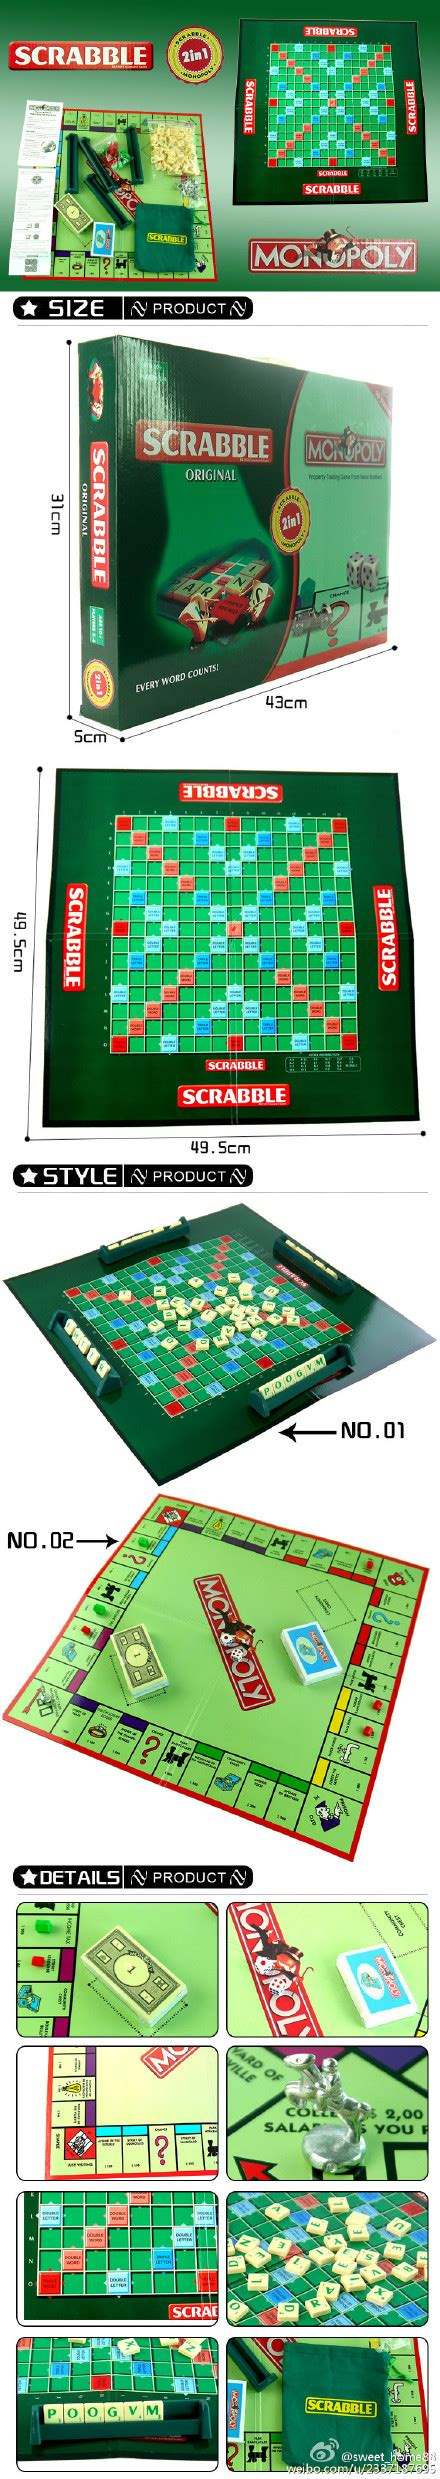 2 in 1 scrabble monopoly family board travel children education ebay